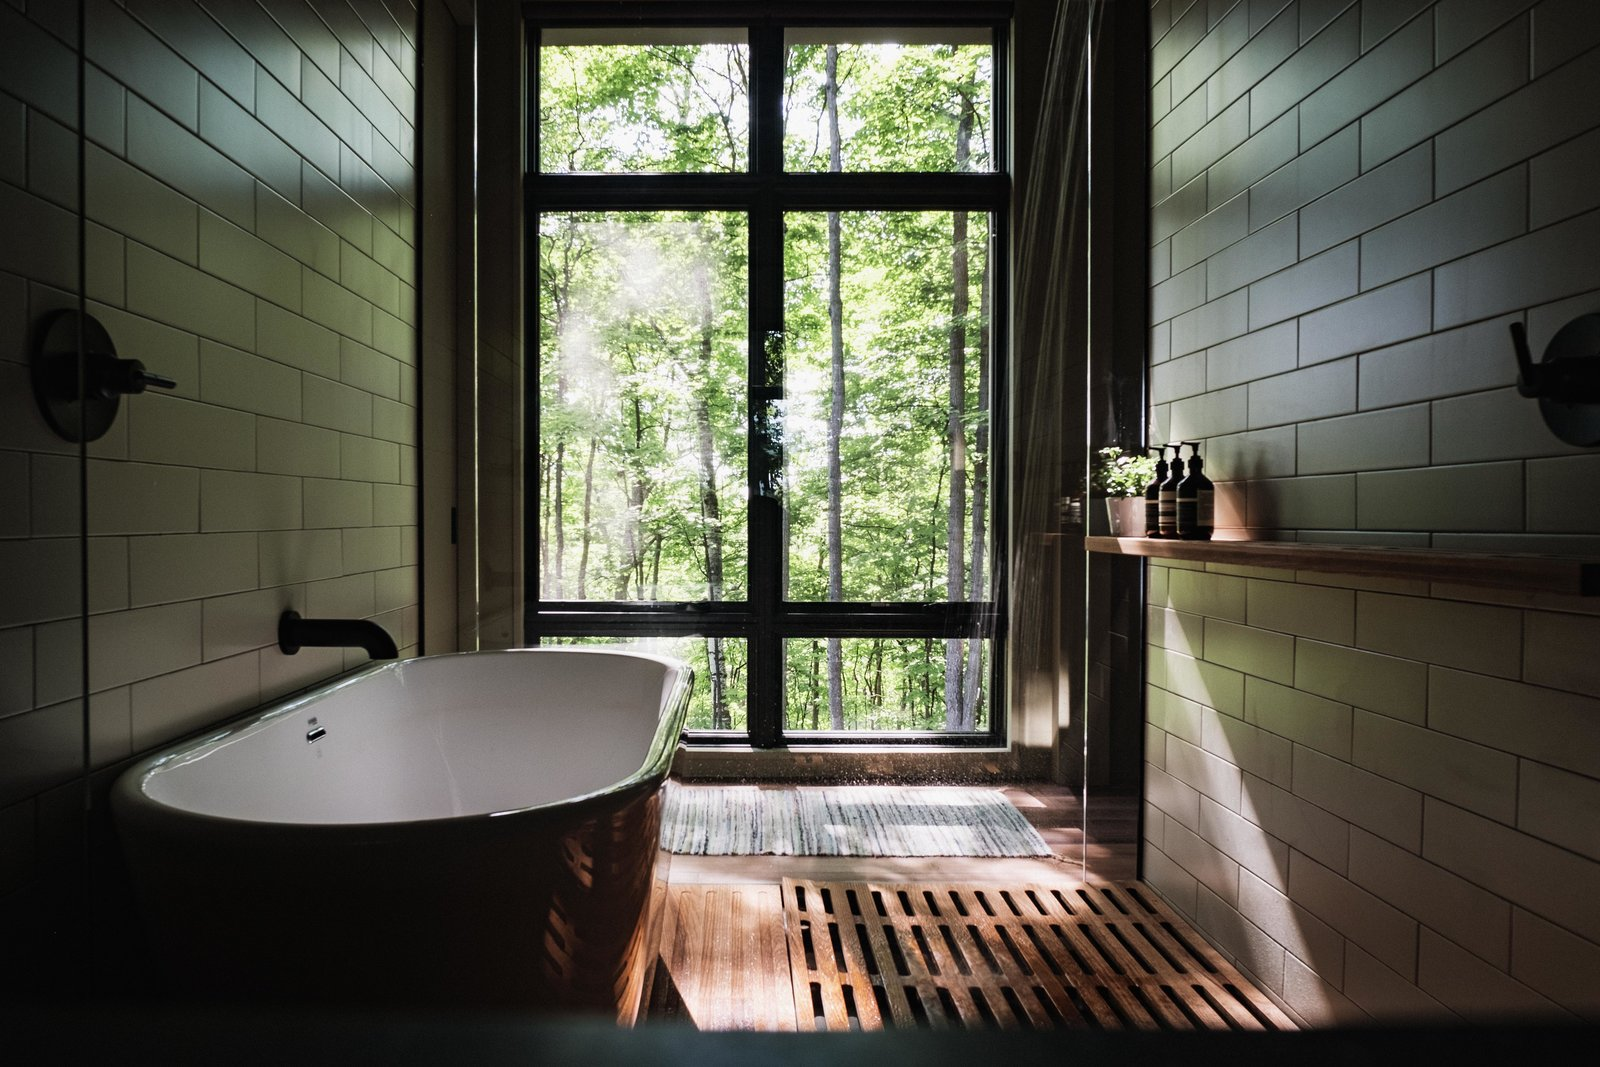 Bath, Pendant, Undermount, Soaking, Medium Hardwood, Two Piece, Open, Ceiling, Freestanding, and Subway Tile Master bath wet room with views of trees.  Best Bath Two Piece Pendant Open Freestanding Subway Tile Photos from Birch Le Collaboration House